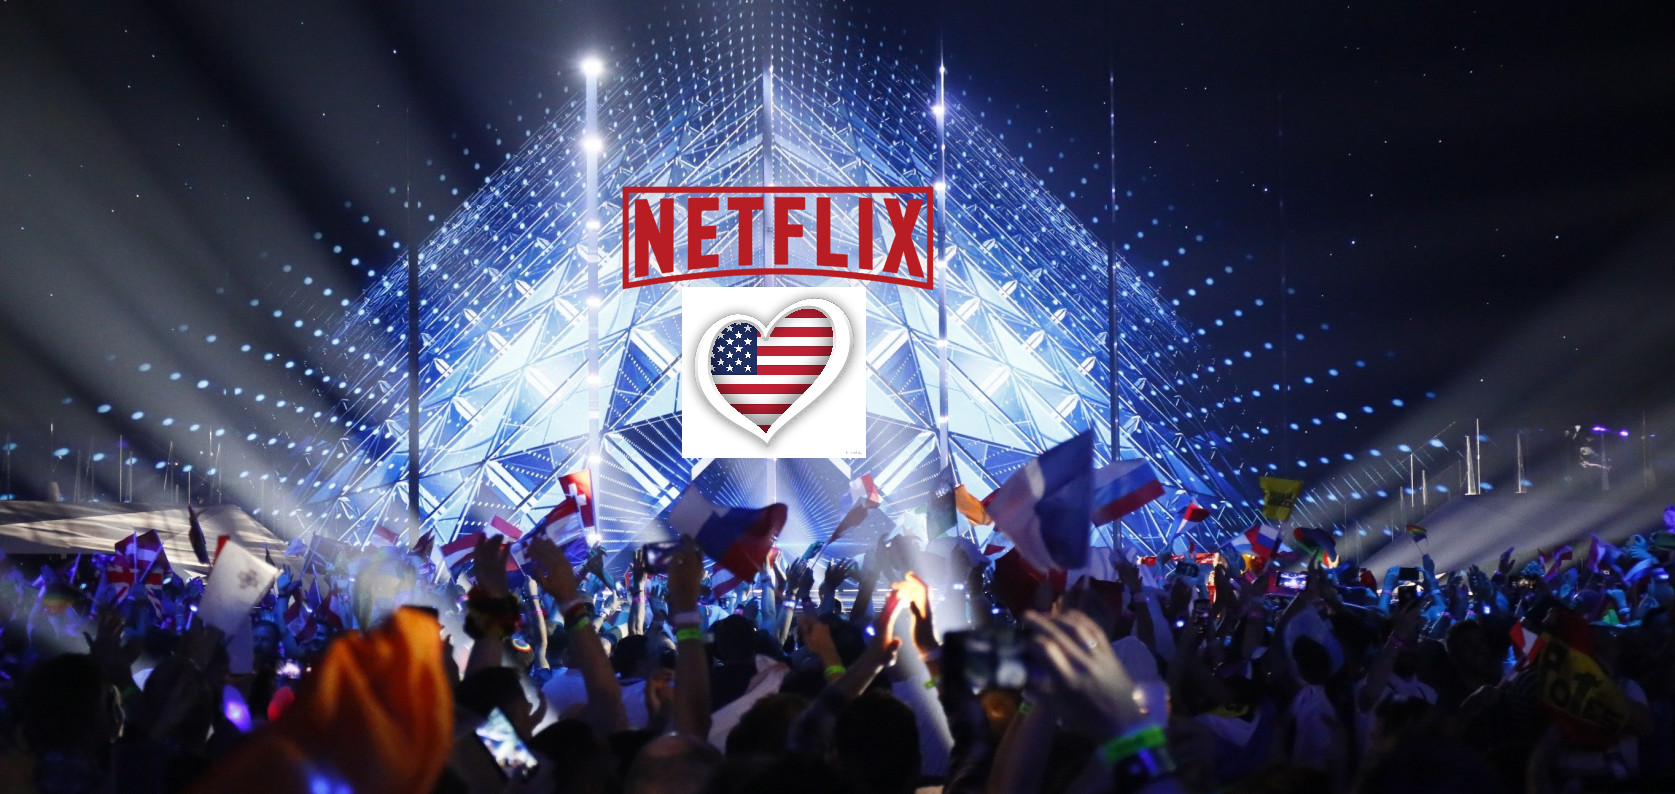 United States: EBU agreement with Netflix brings Eurovision 2019 and 2020 in the U.S